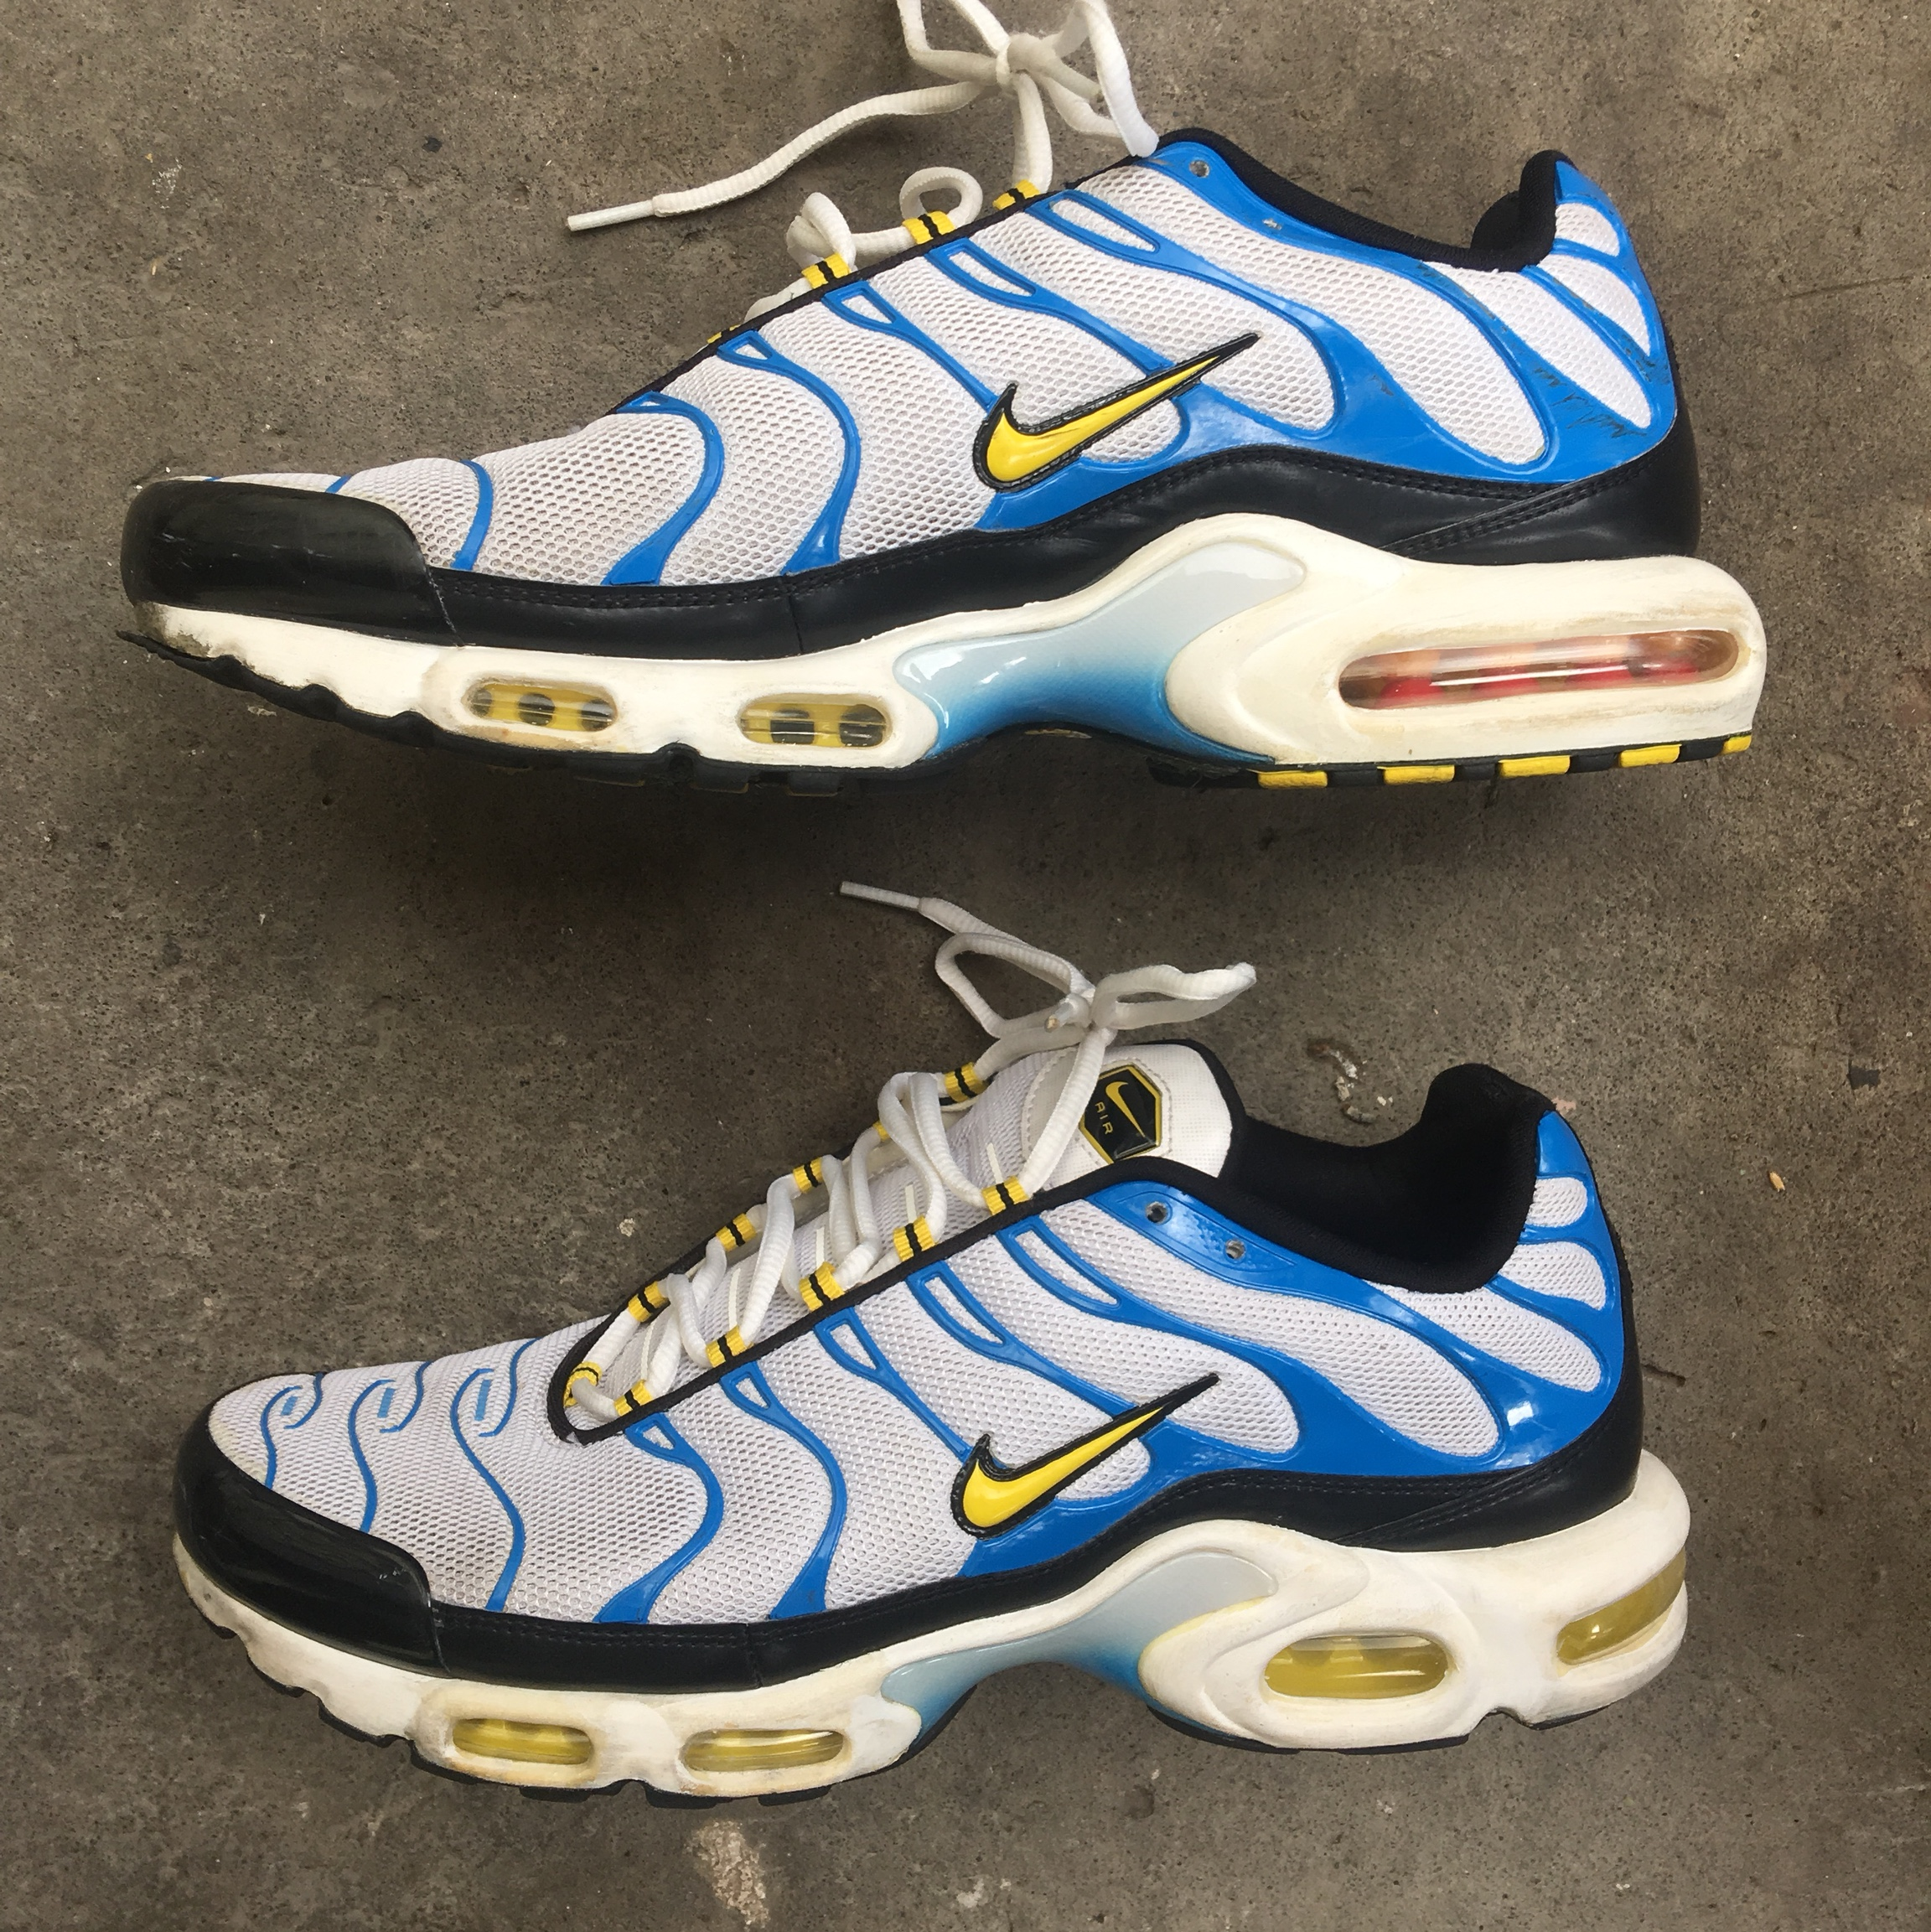 Nike Tn Size 13 Discount Sale, UP TO 63% OFF